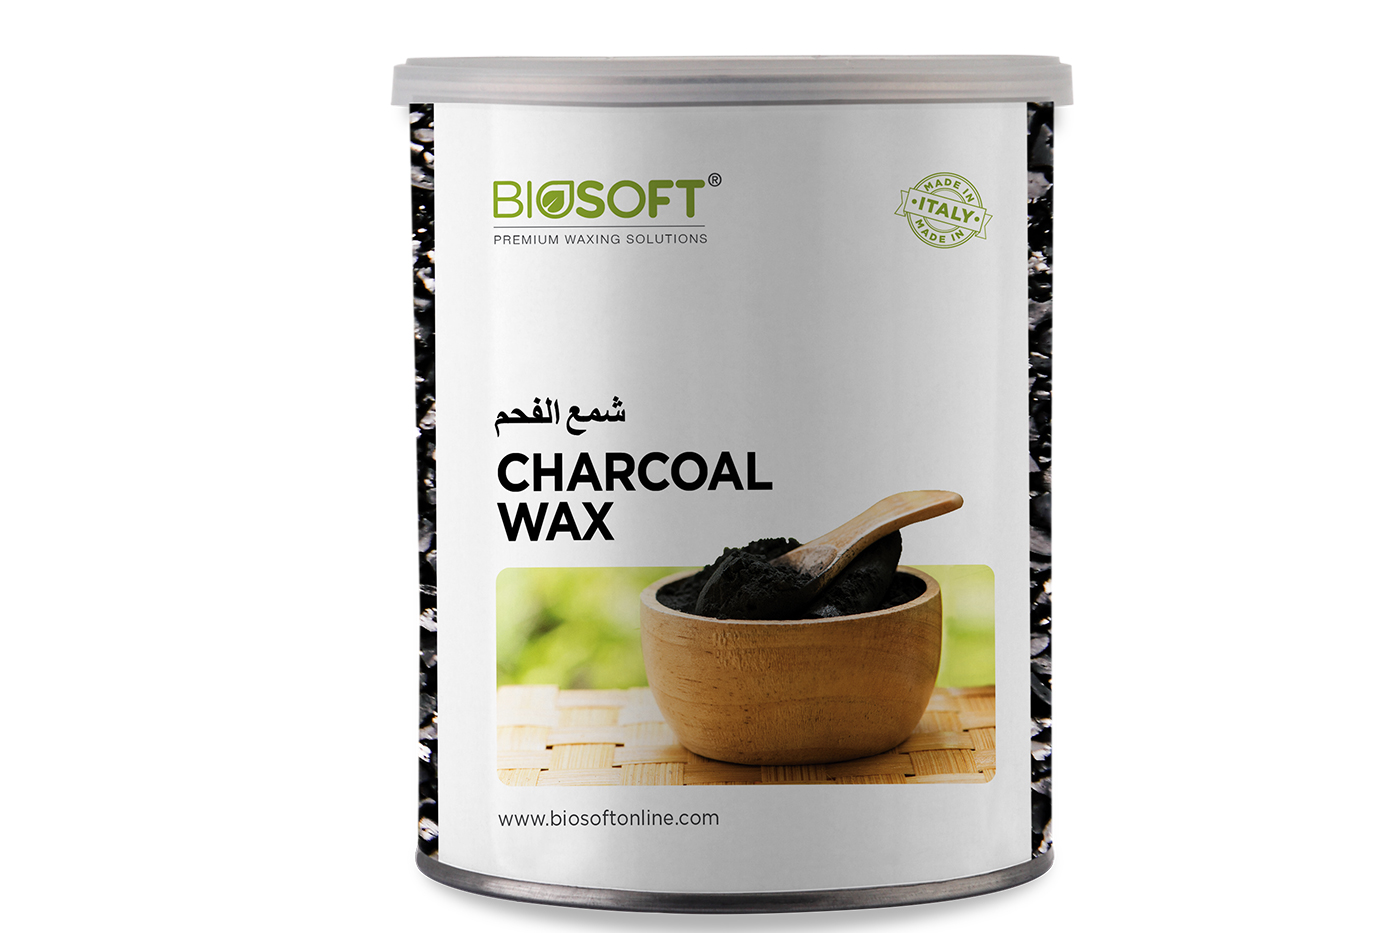 Biosoft's wax for gentle hair removal